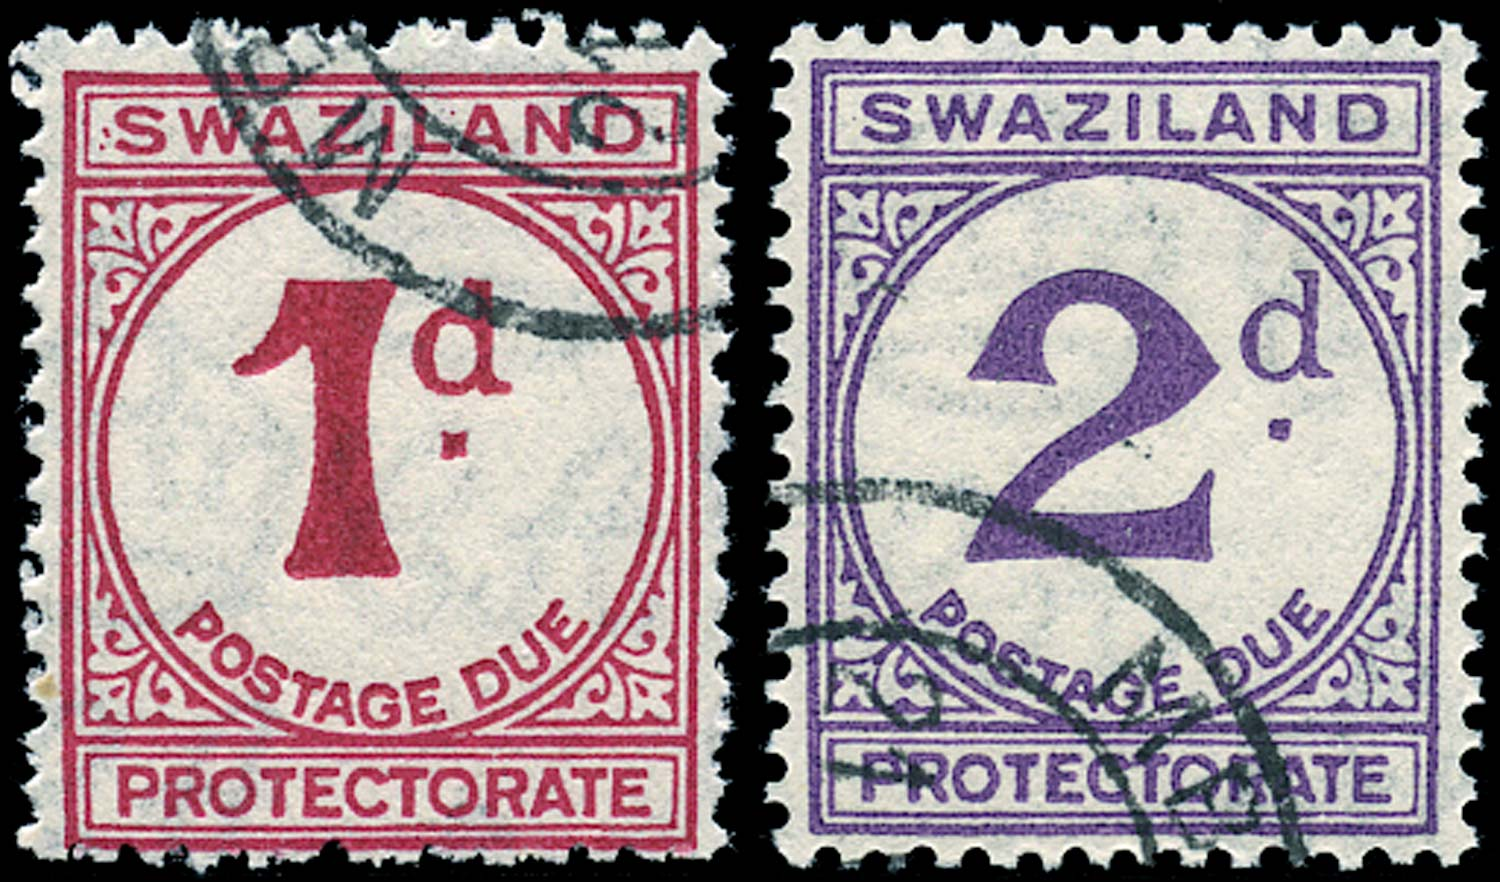 SWAZILAND 1933  SGD1/2 Postage Due 1d and 2d on rough paper 1946 printing